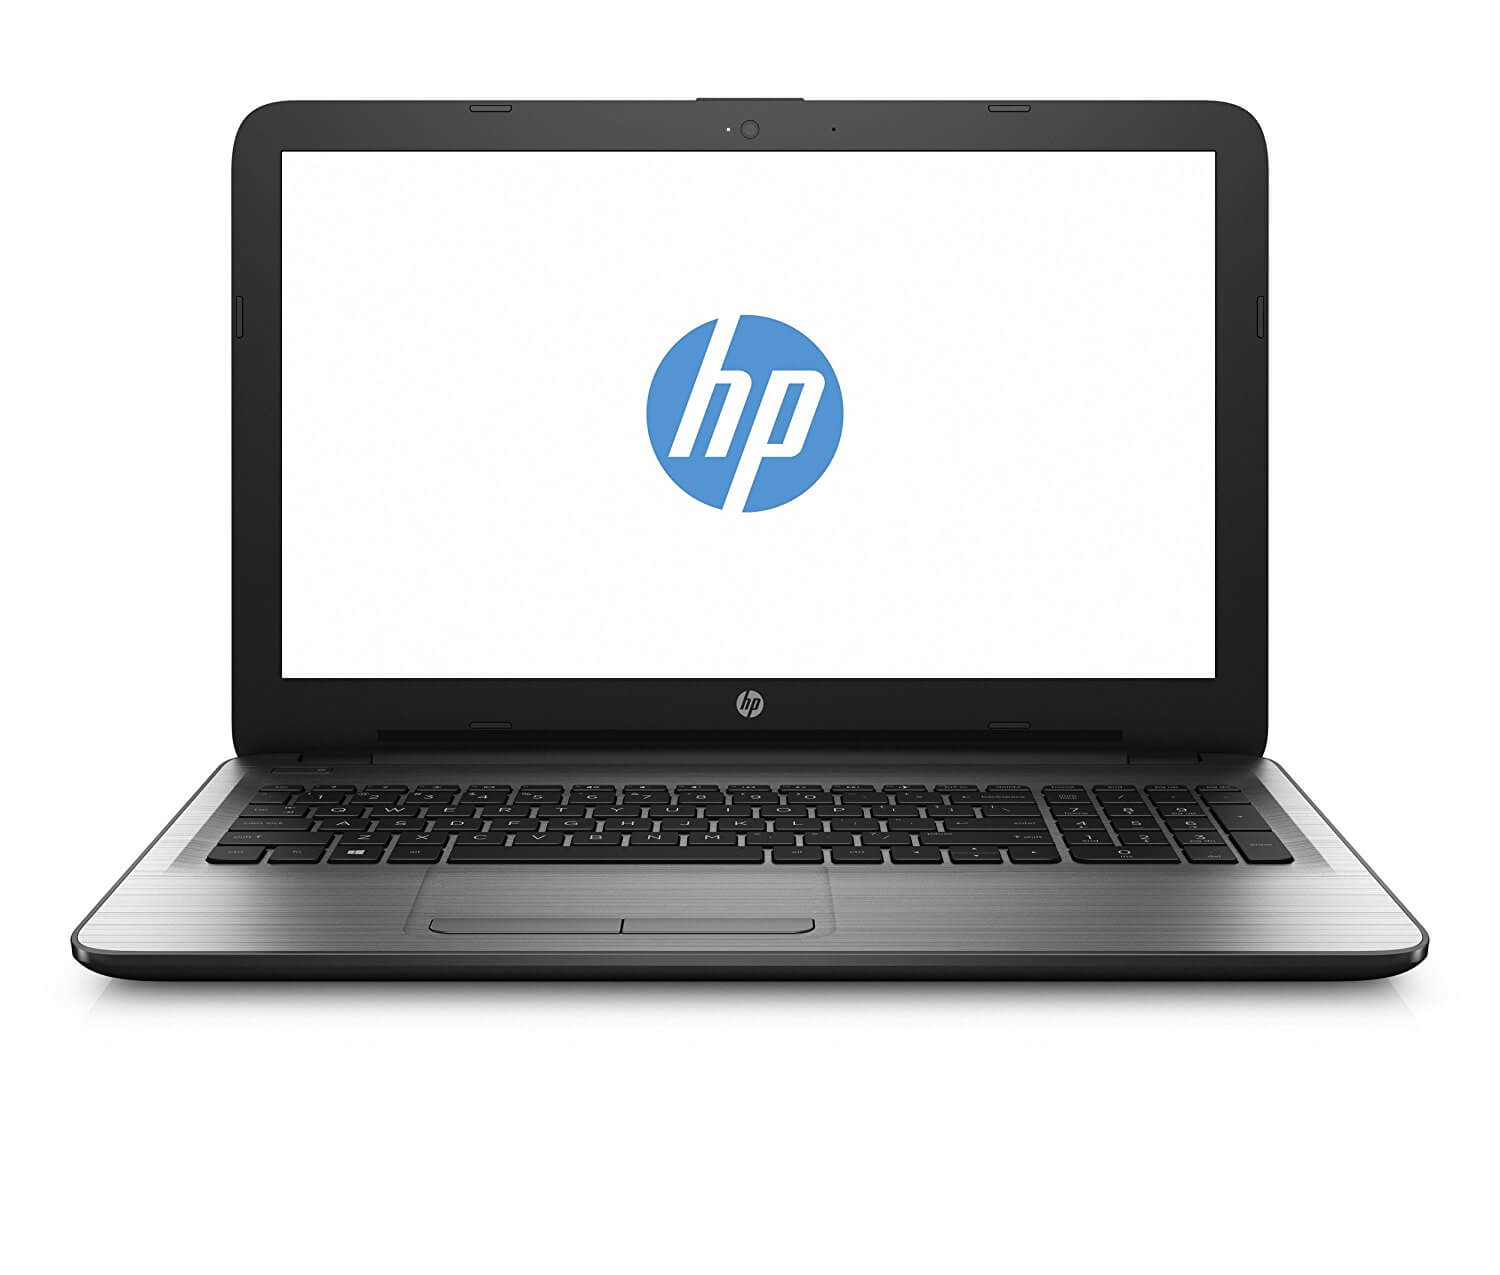 HP 15-ay516TX 15.6-inch Laptop (6th Gen Core i5-6200U/4GB/1TB/FreeDOS 2.0/2GB Graphics),Turbo Silver